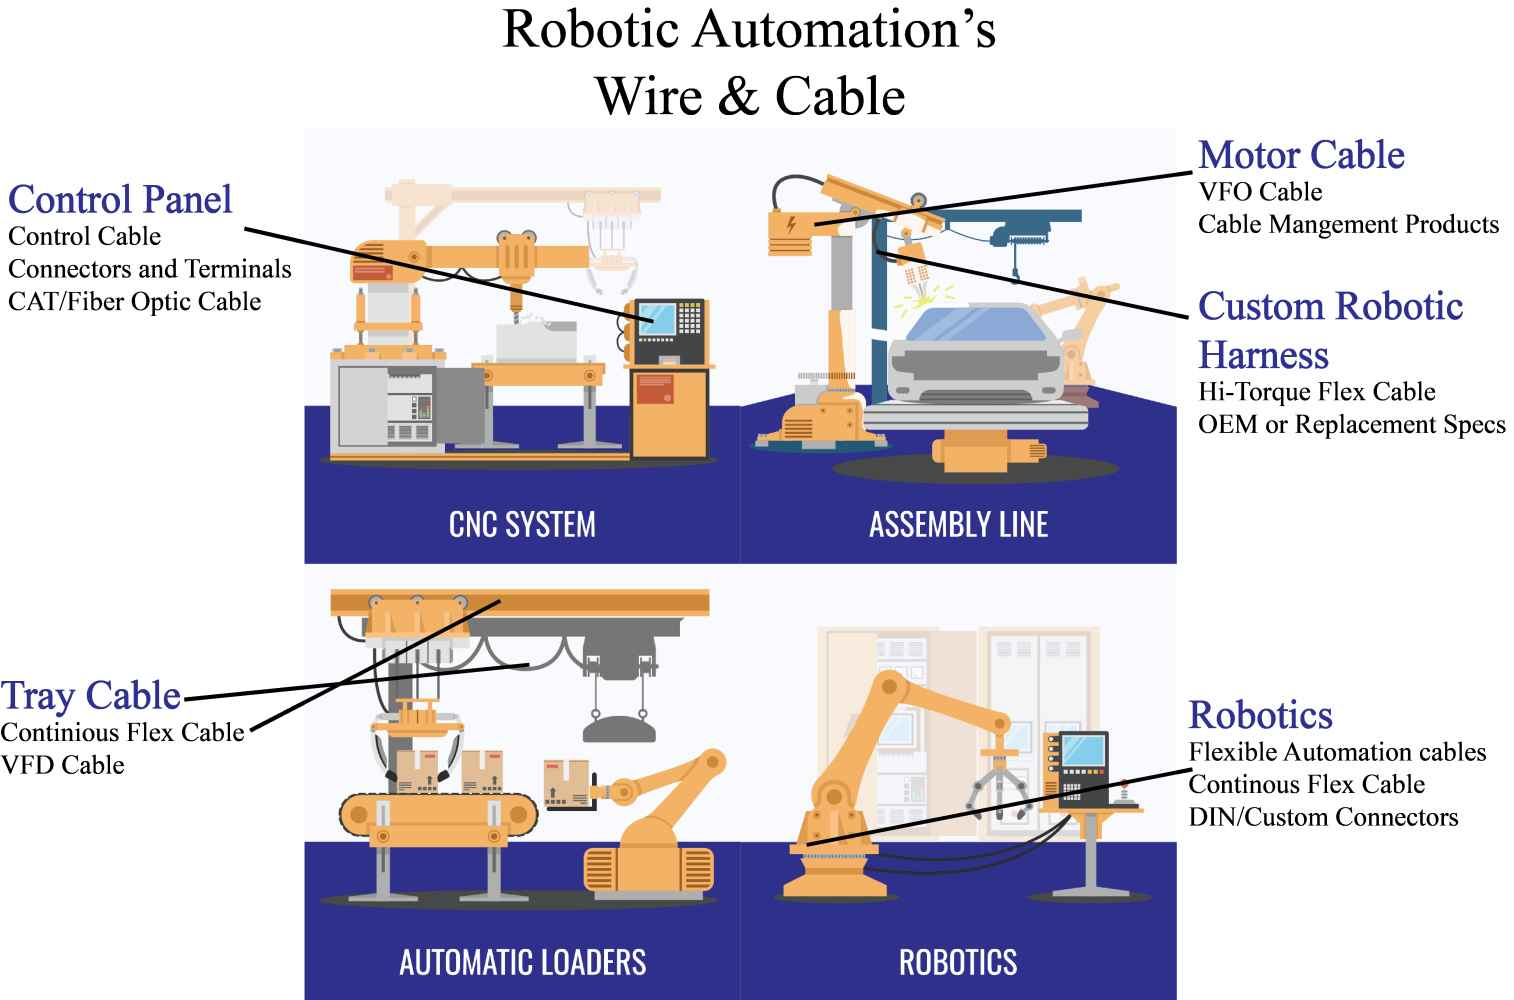 Robotic automation diagram of products